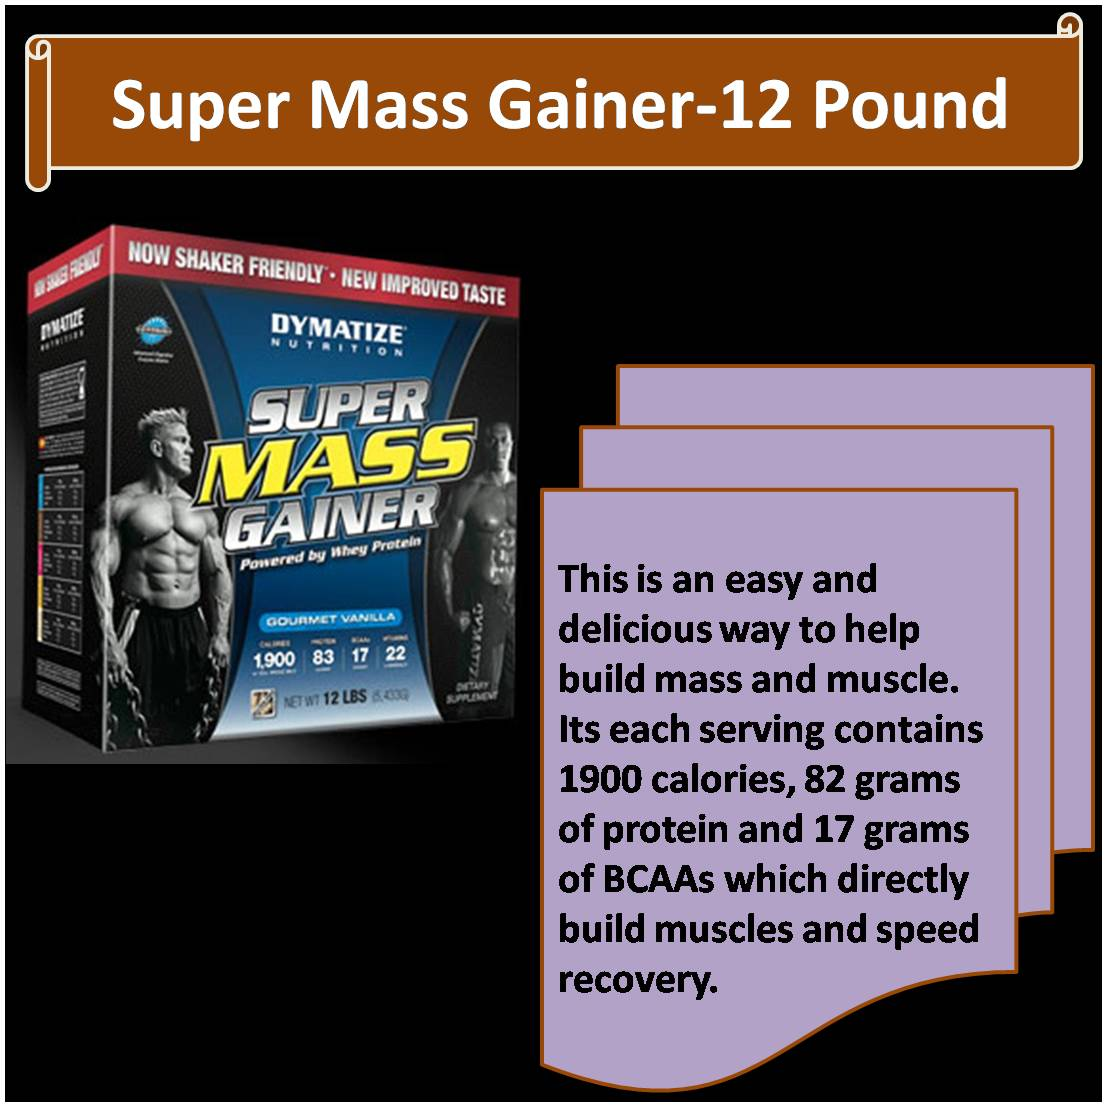 Super Mass Gainer-12 Pound